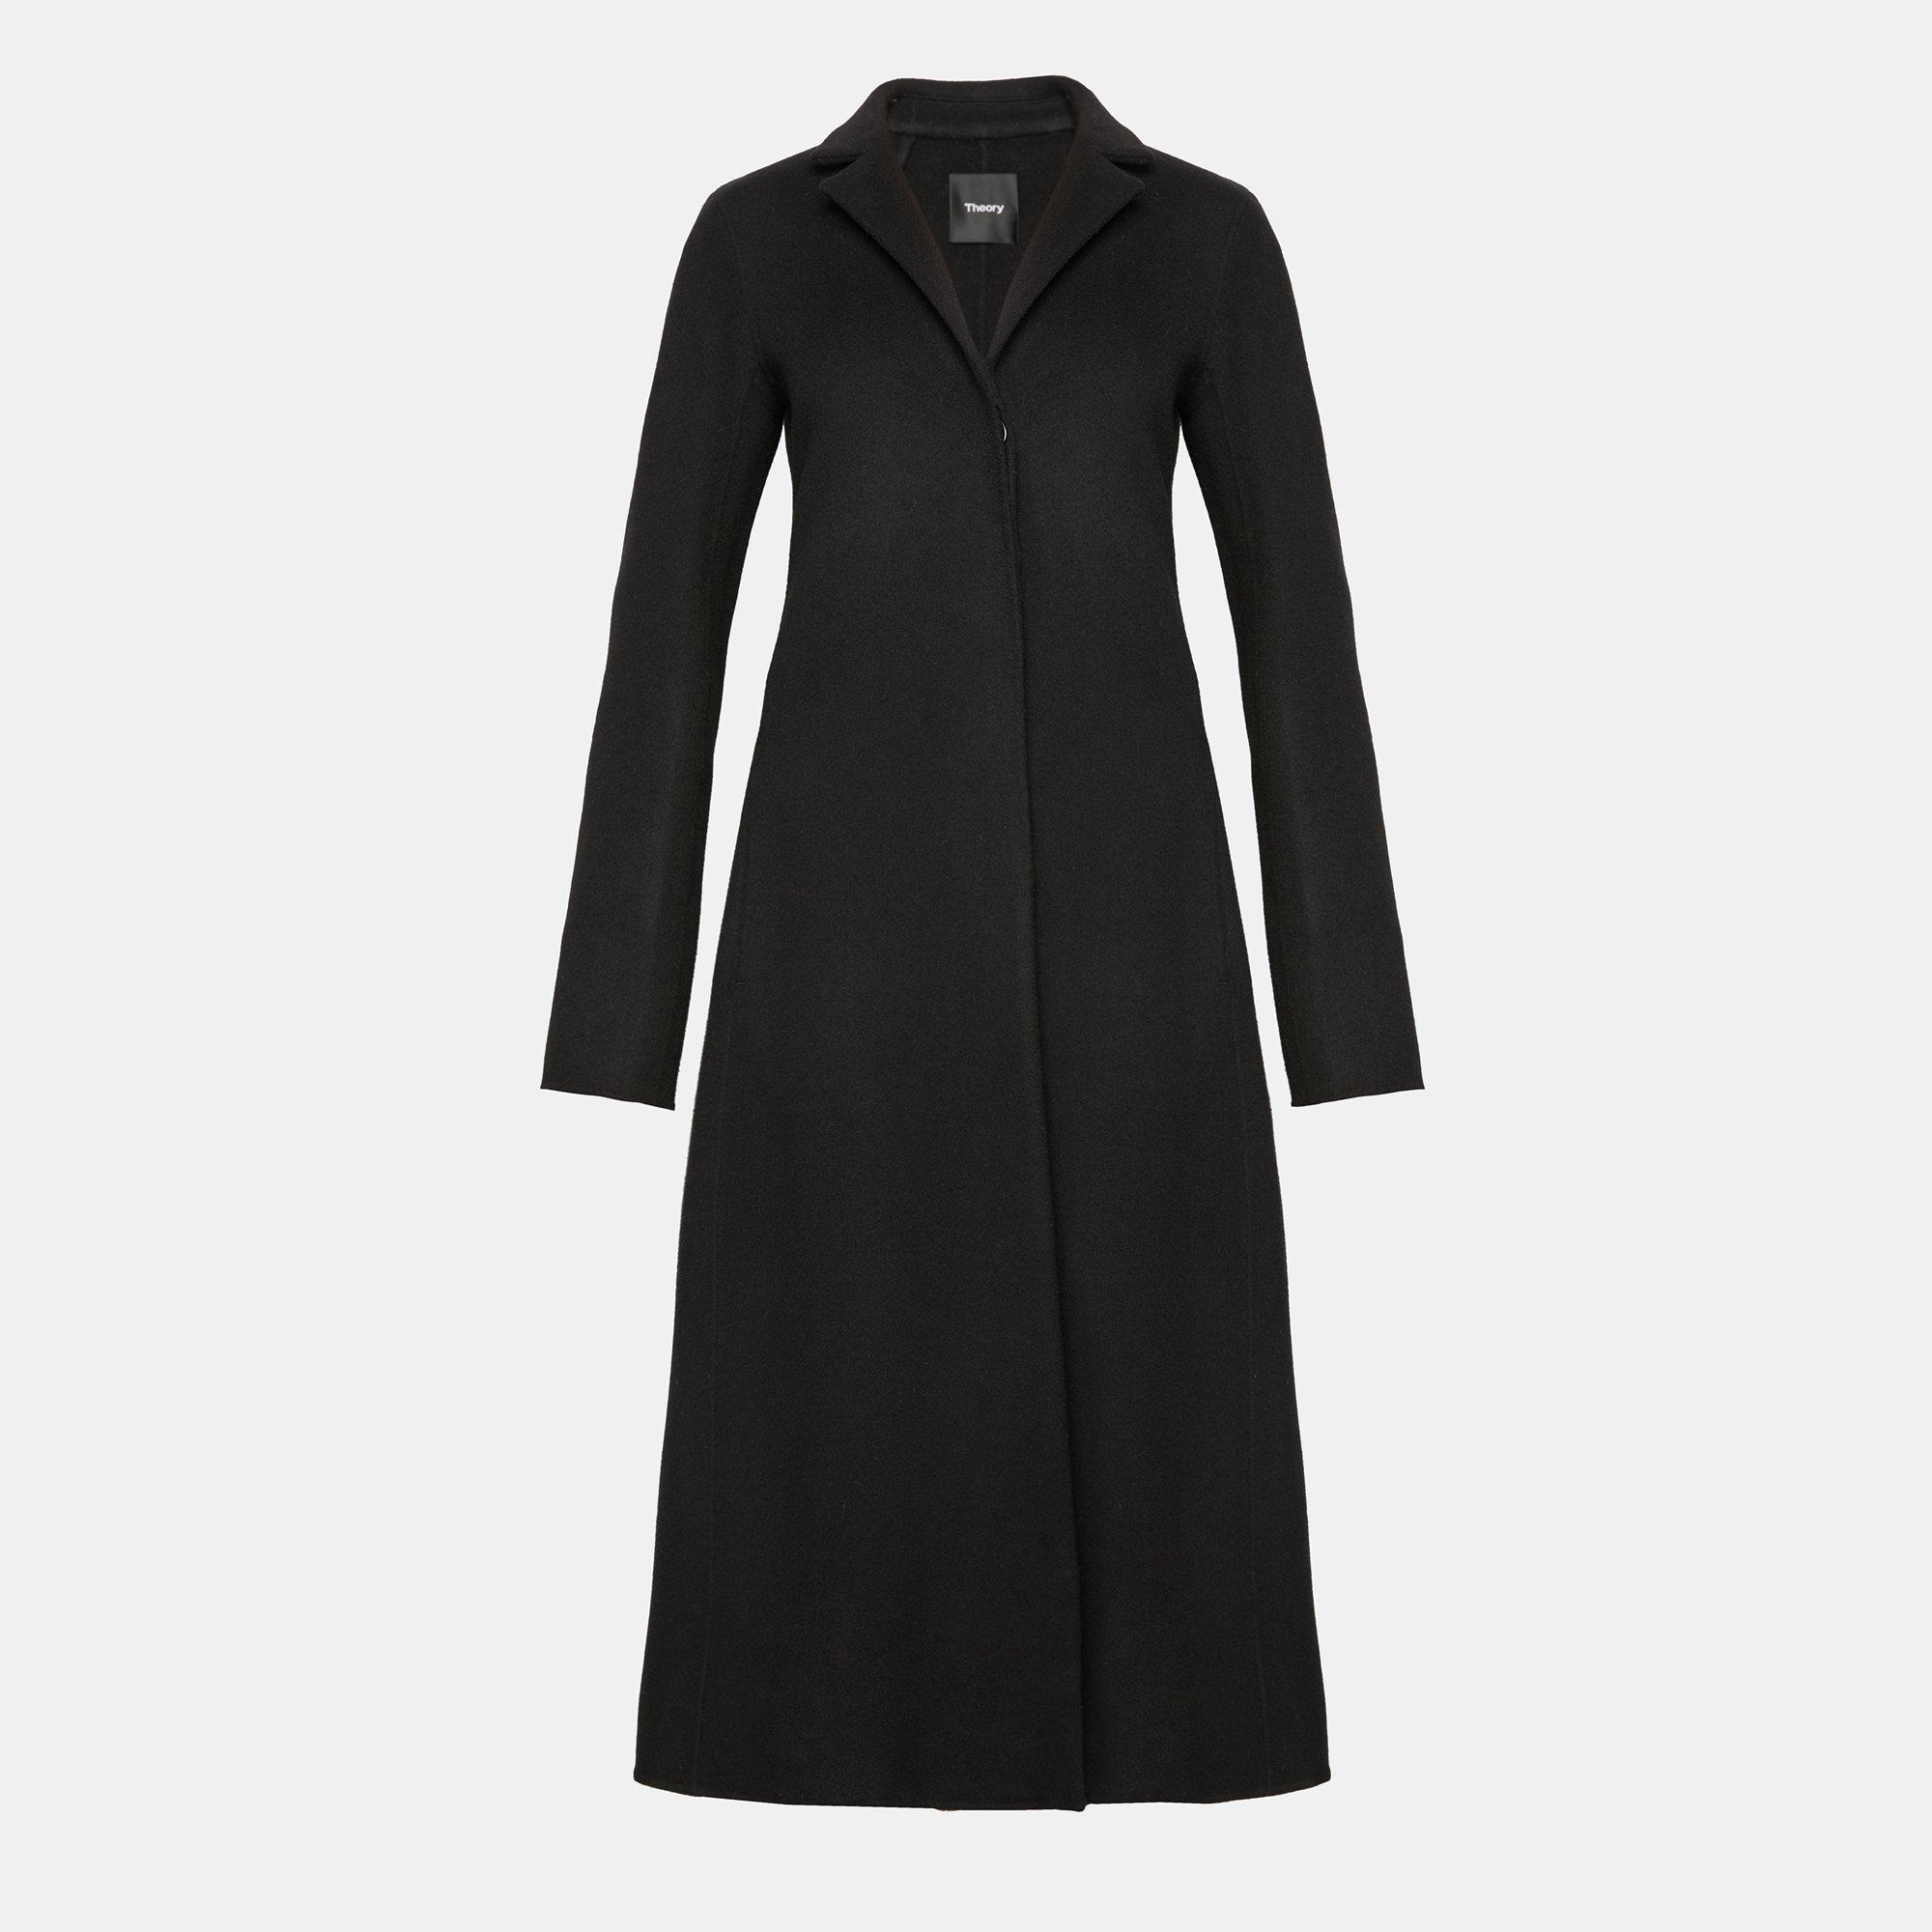 Theory 'A Line' Wool-Cashmere Melton Coat